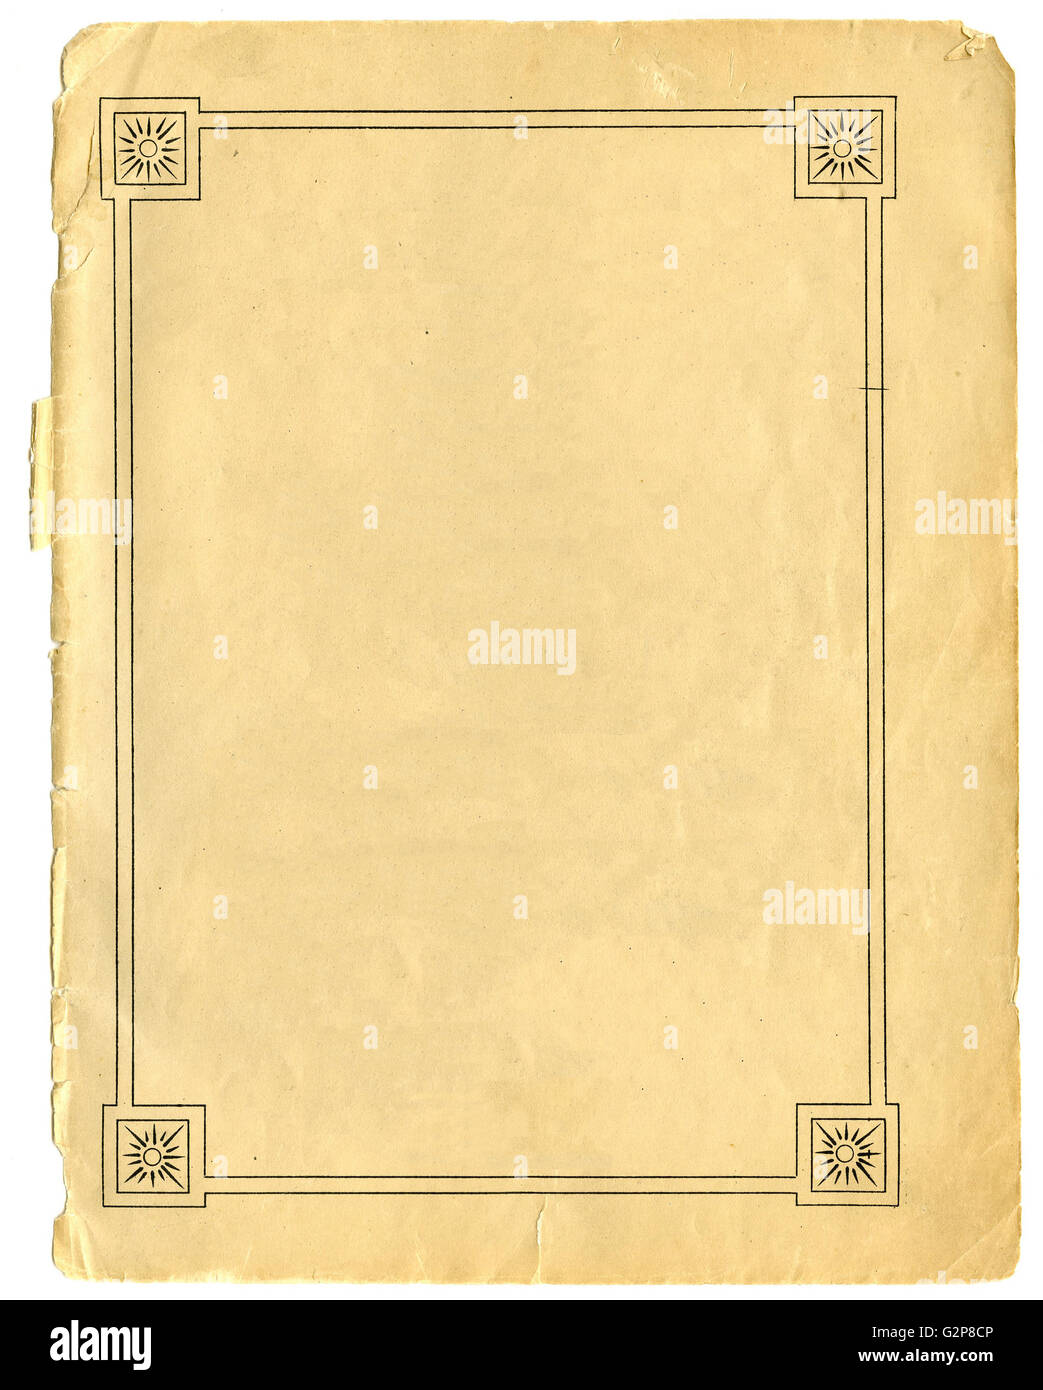 Vintage sheet of paper with sun filled border - Stock Image